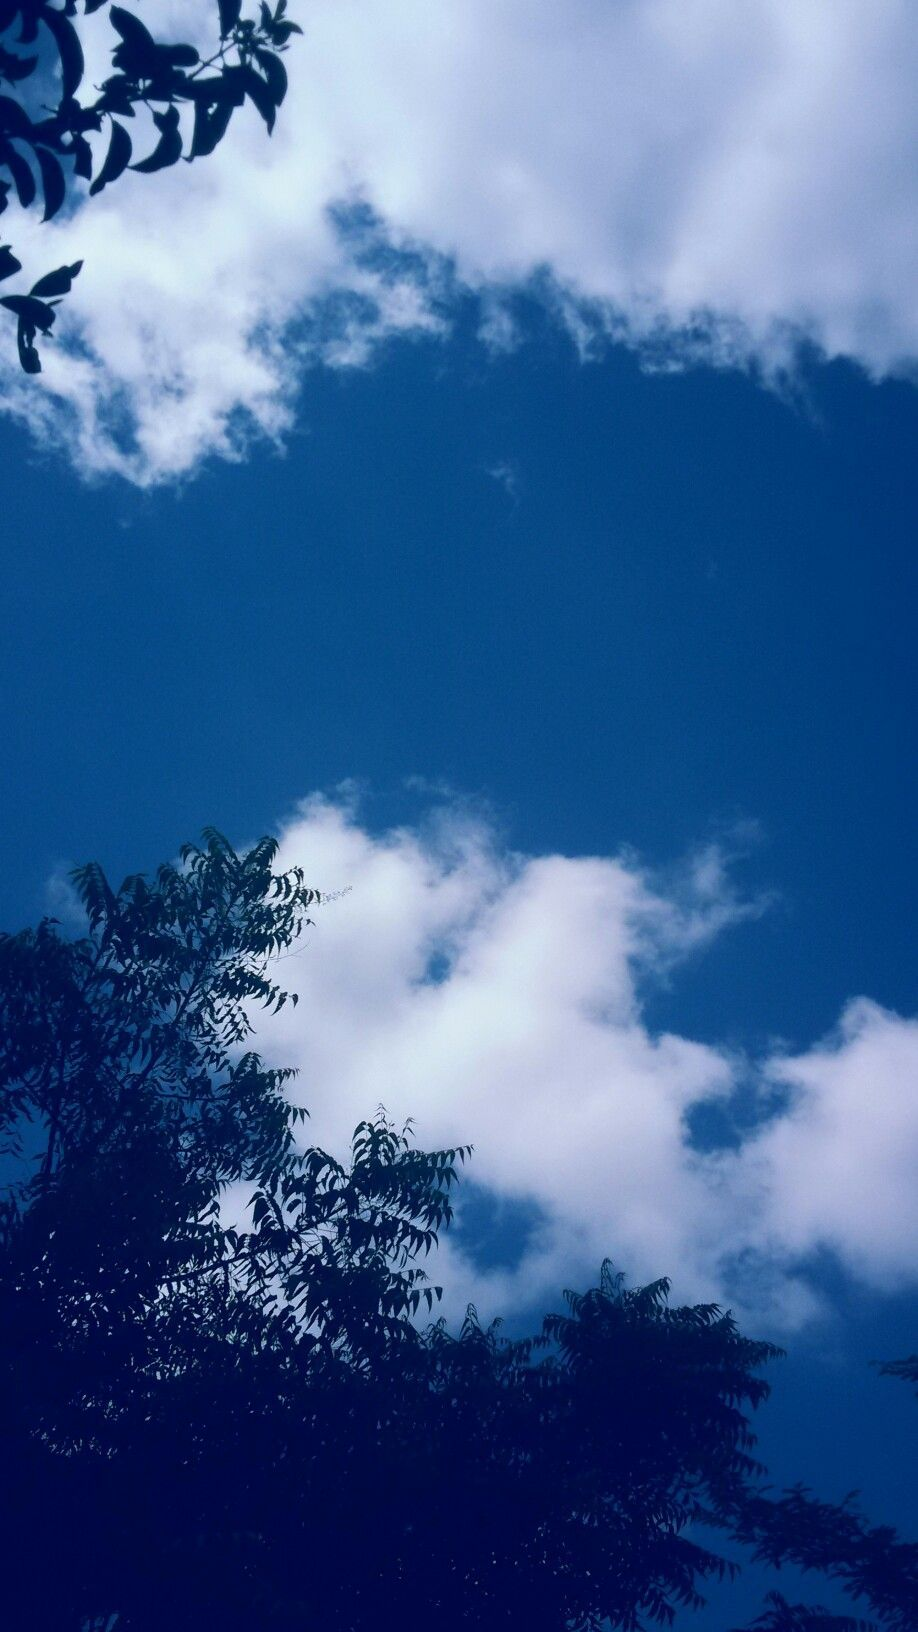 Aesthetic Blue Sky Wallpapers - Wallpaper Cave